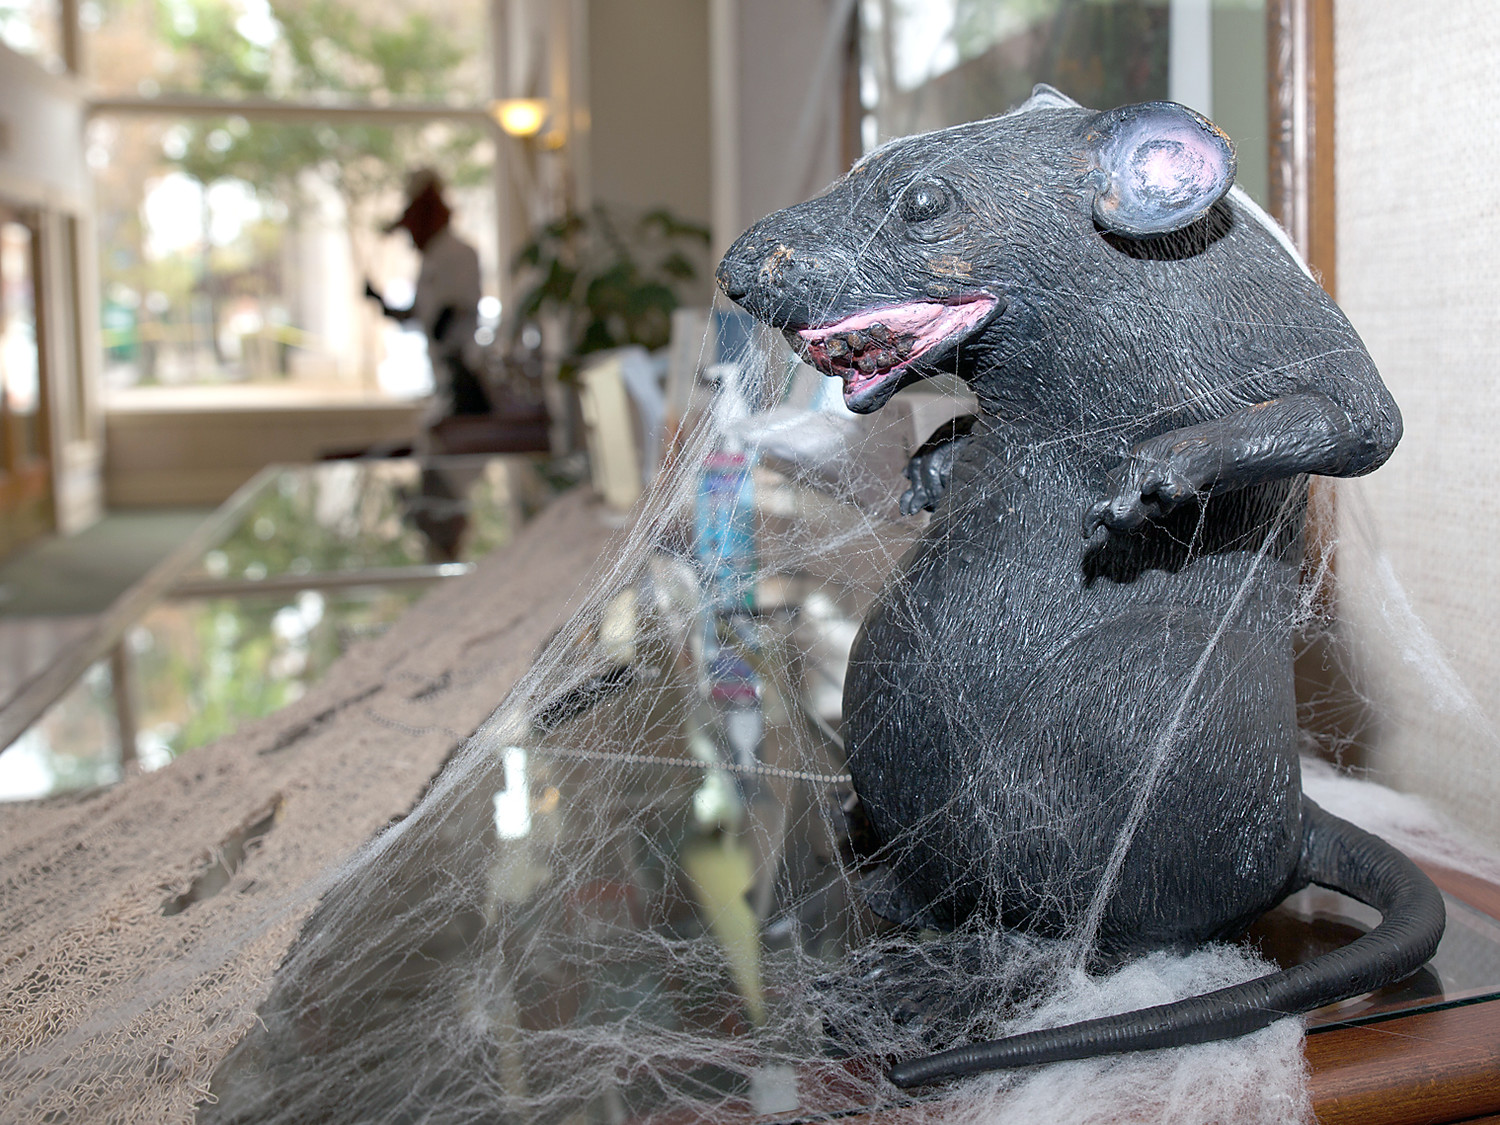 COBWEBS AND RATS galore adorn the lobby and common areas of the Bank of Cleveland for Halloween.